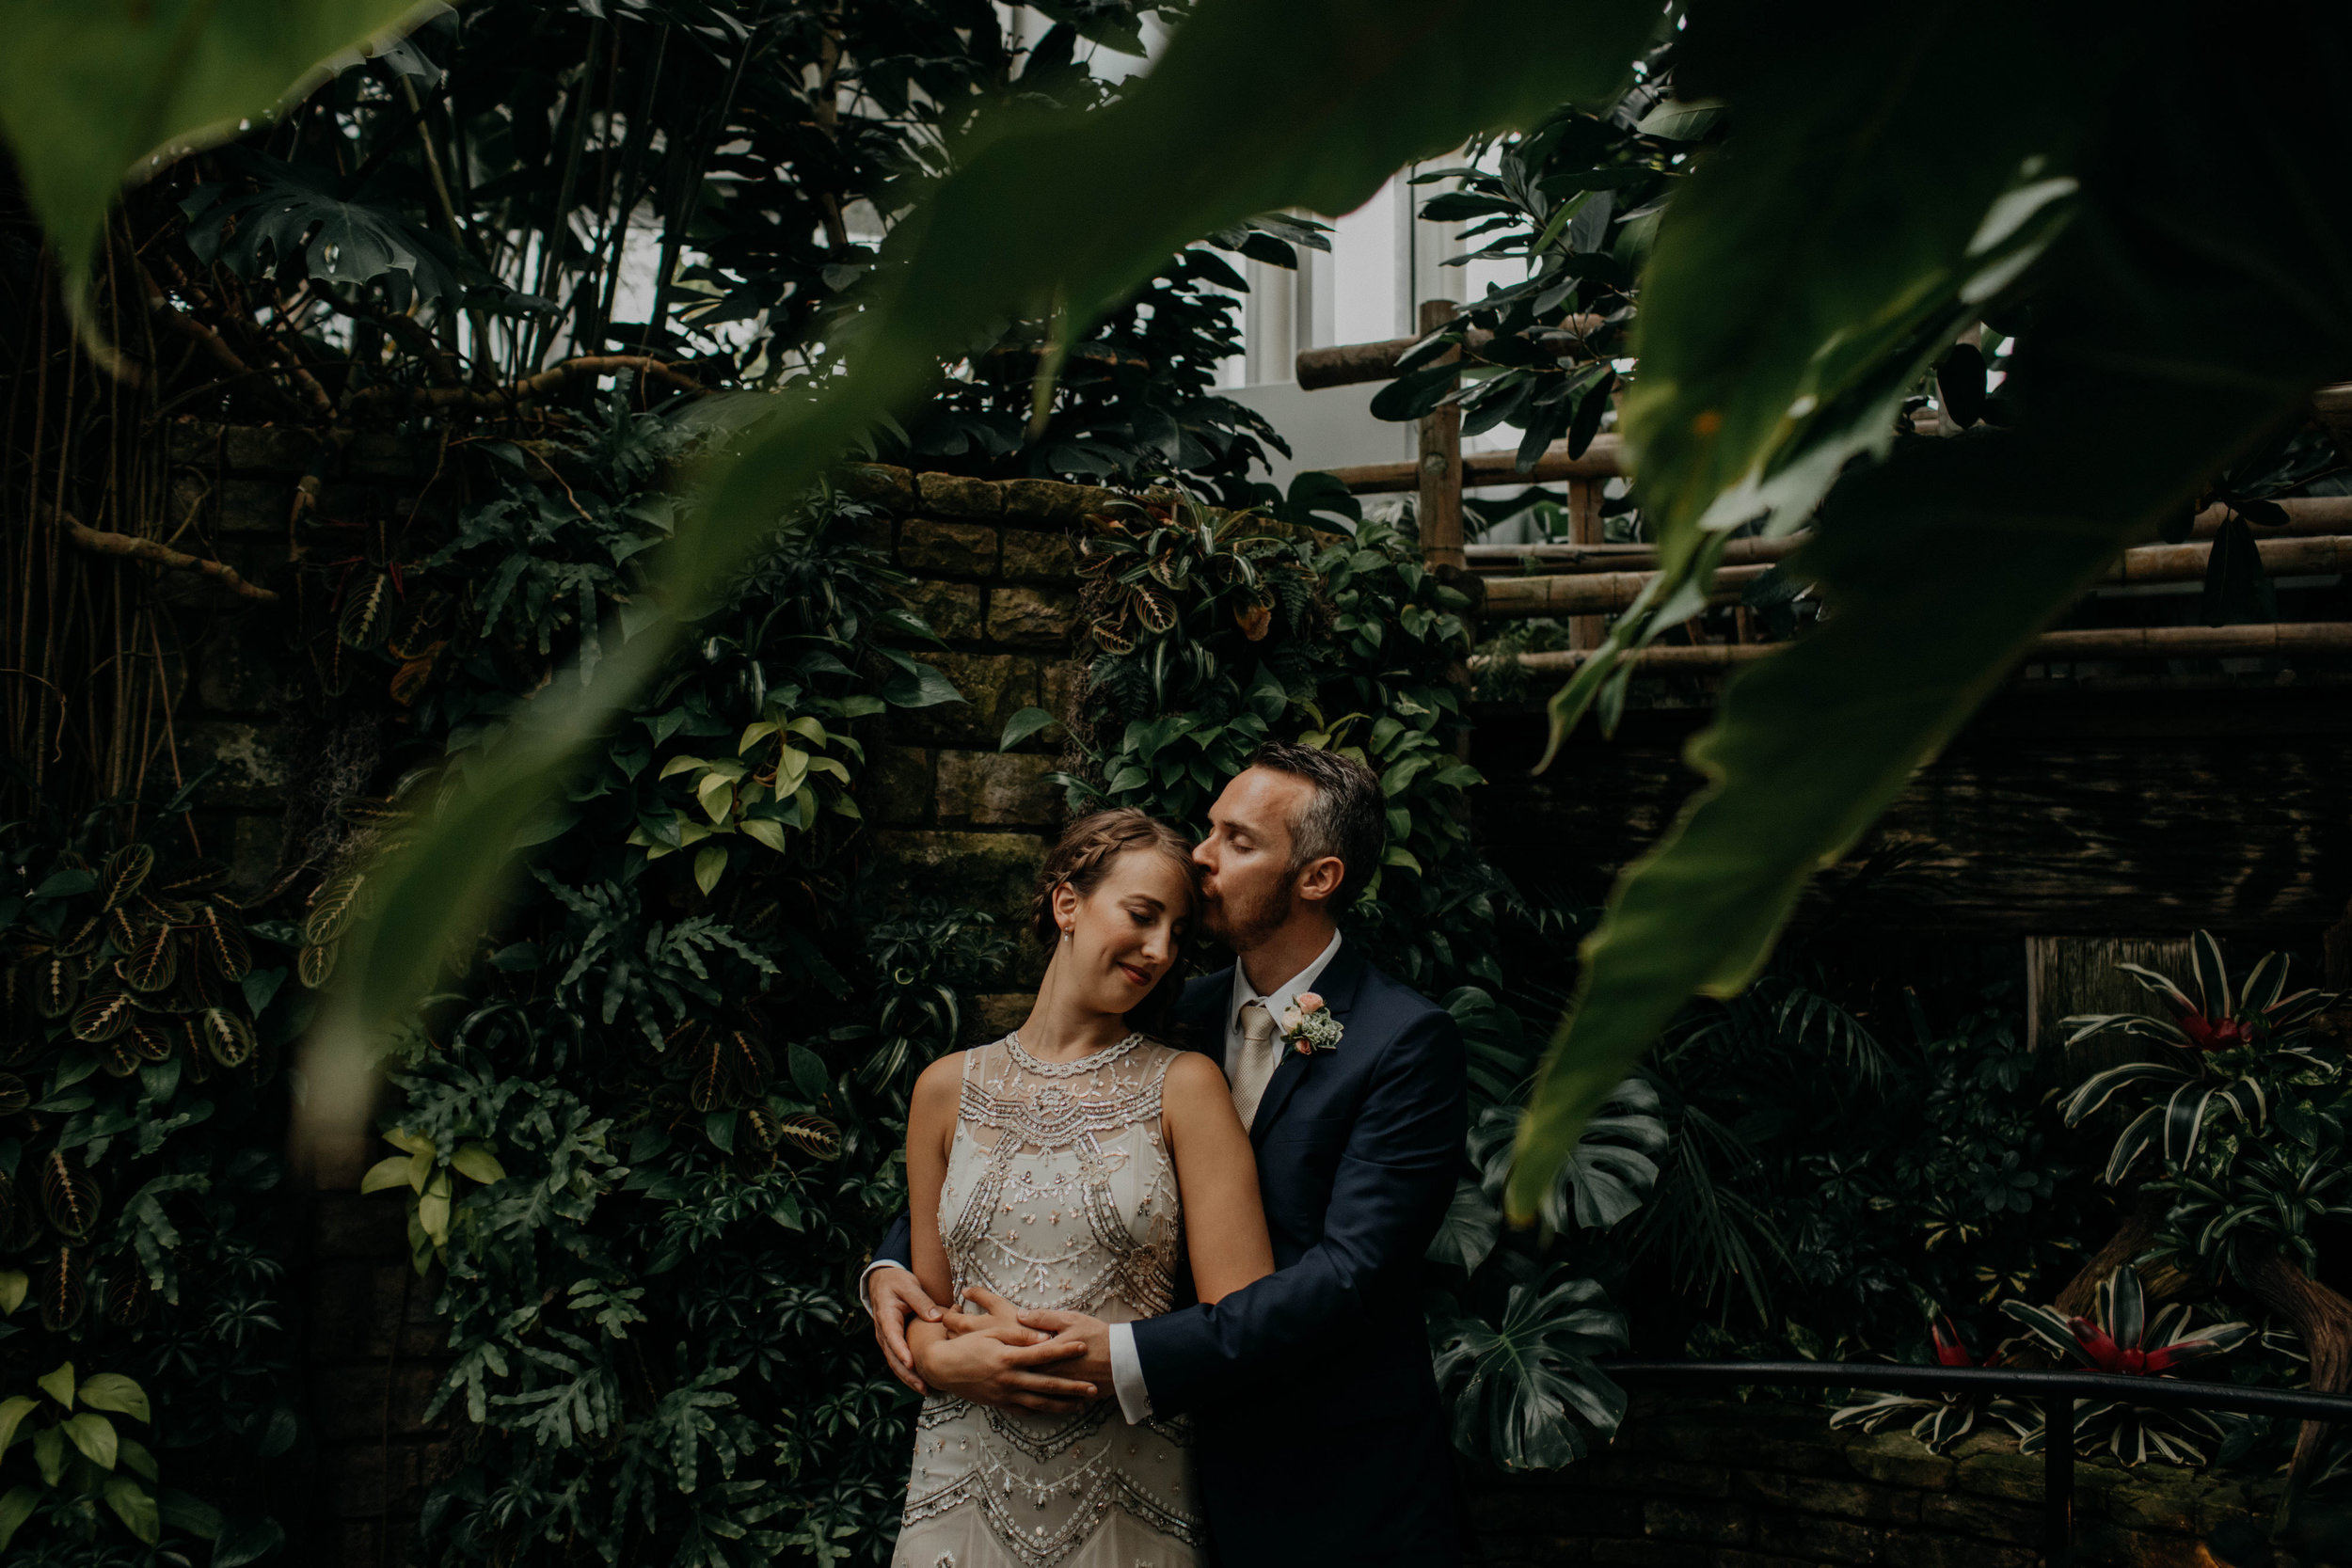 franklin park conservatory wedding columbus ohio wedding photographer grace e jones photography150.jpg